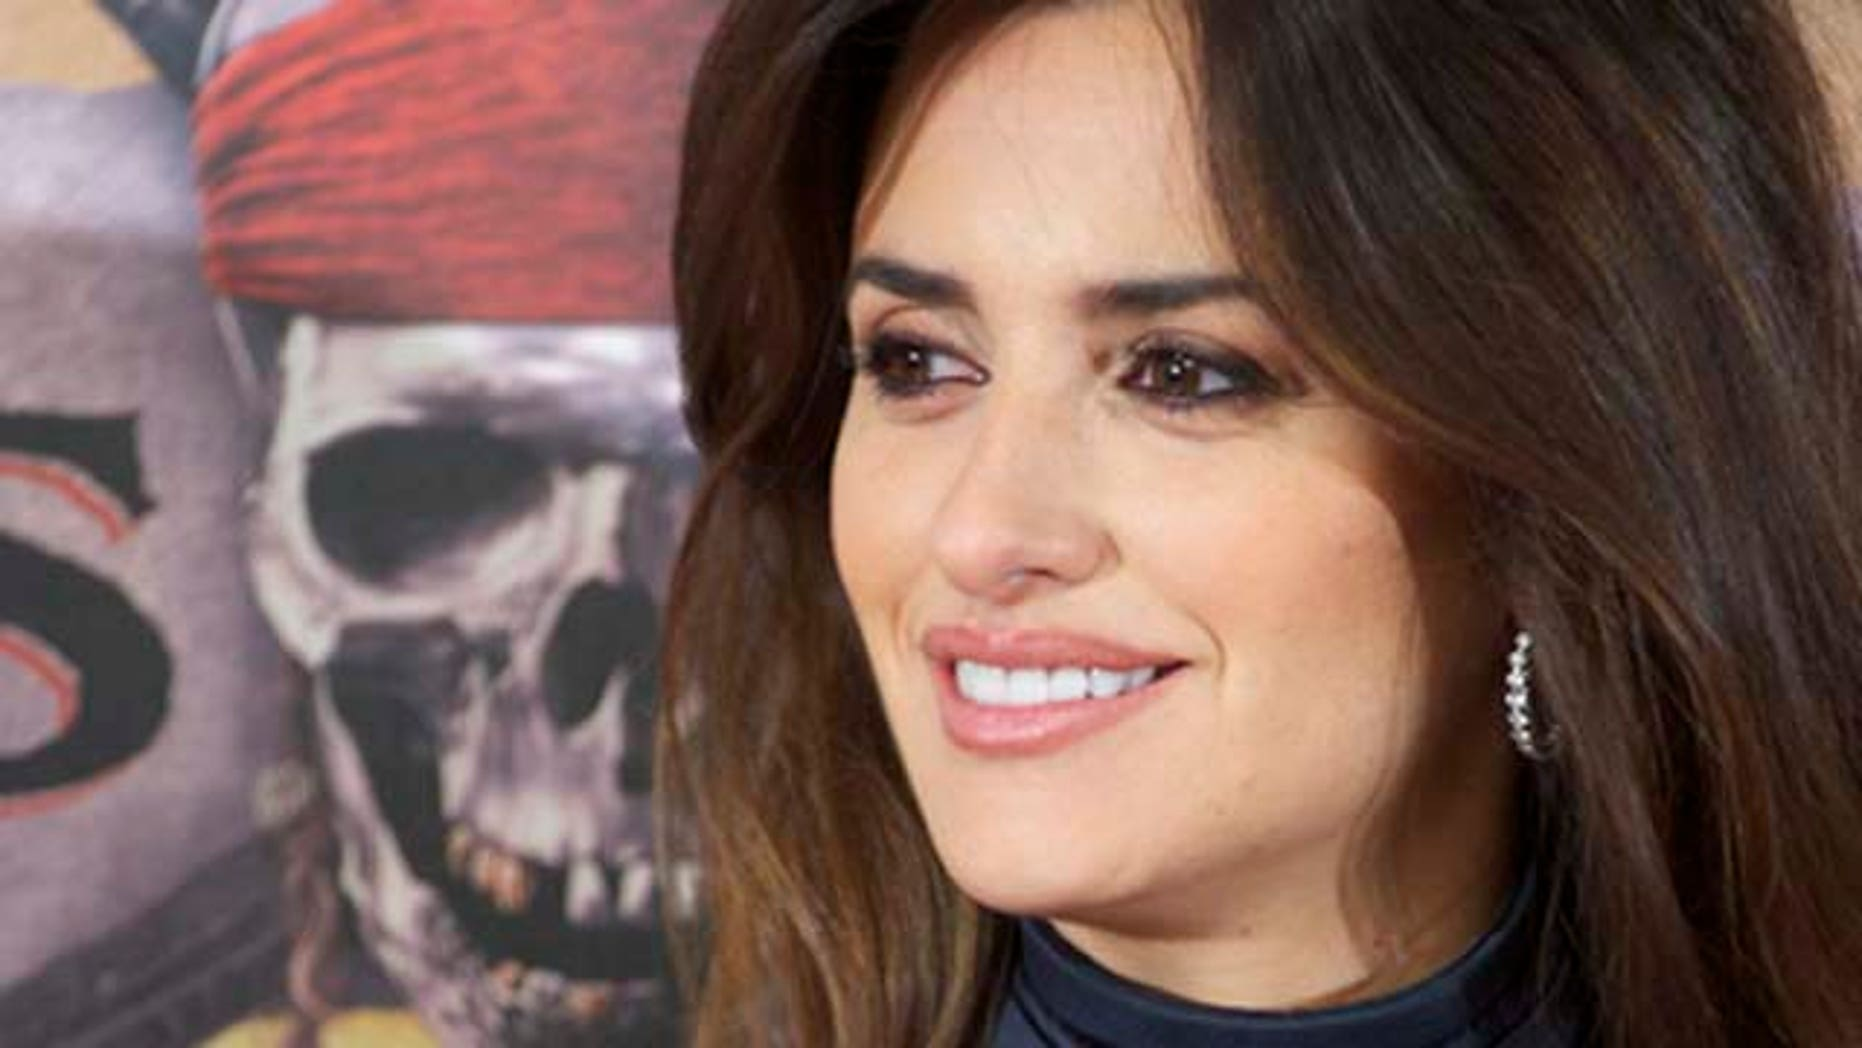 May 18, 2011: Spanish actress Penélope Cruz attends 'Pirates Of The Caribbean: On Stranger Tides' photocall at the Villamagna Hotel in Madrid, Spain.